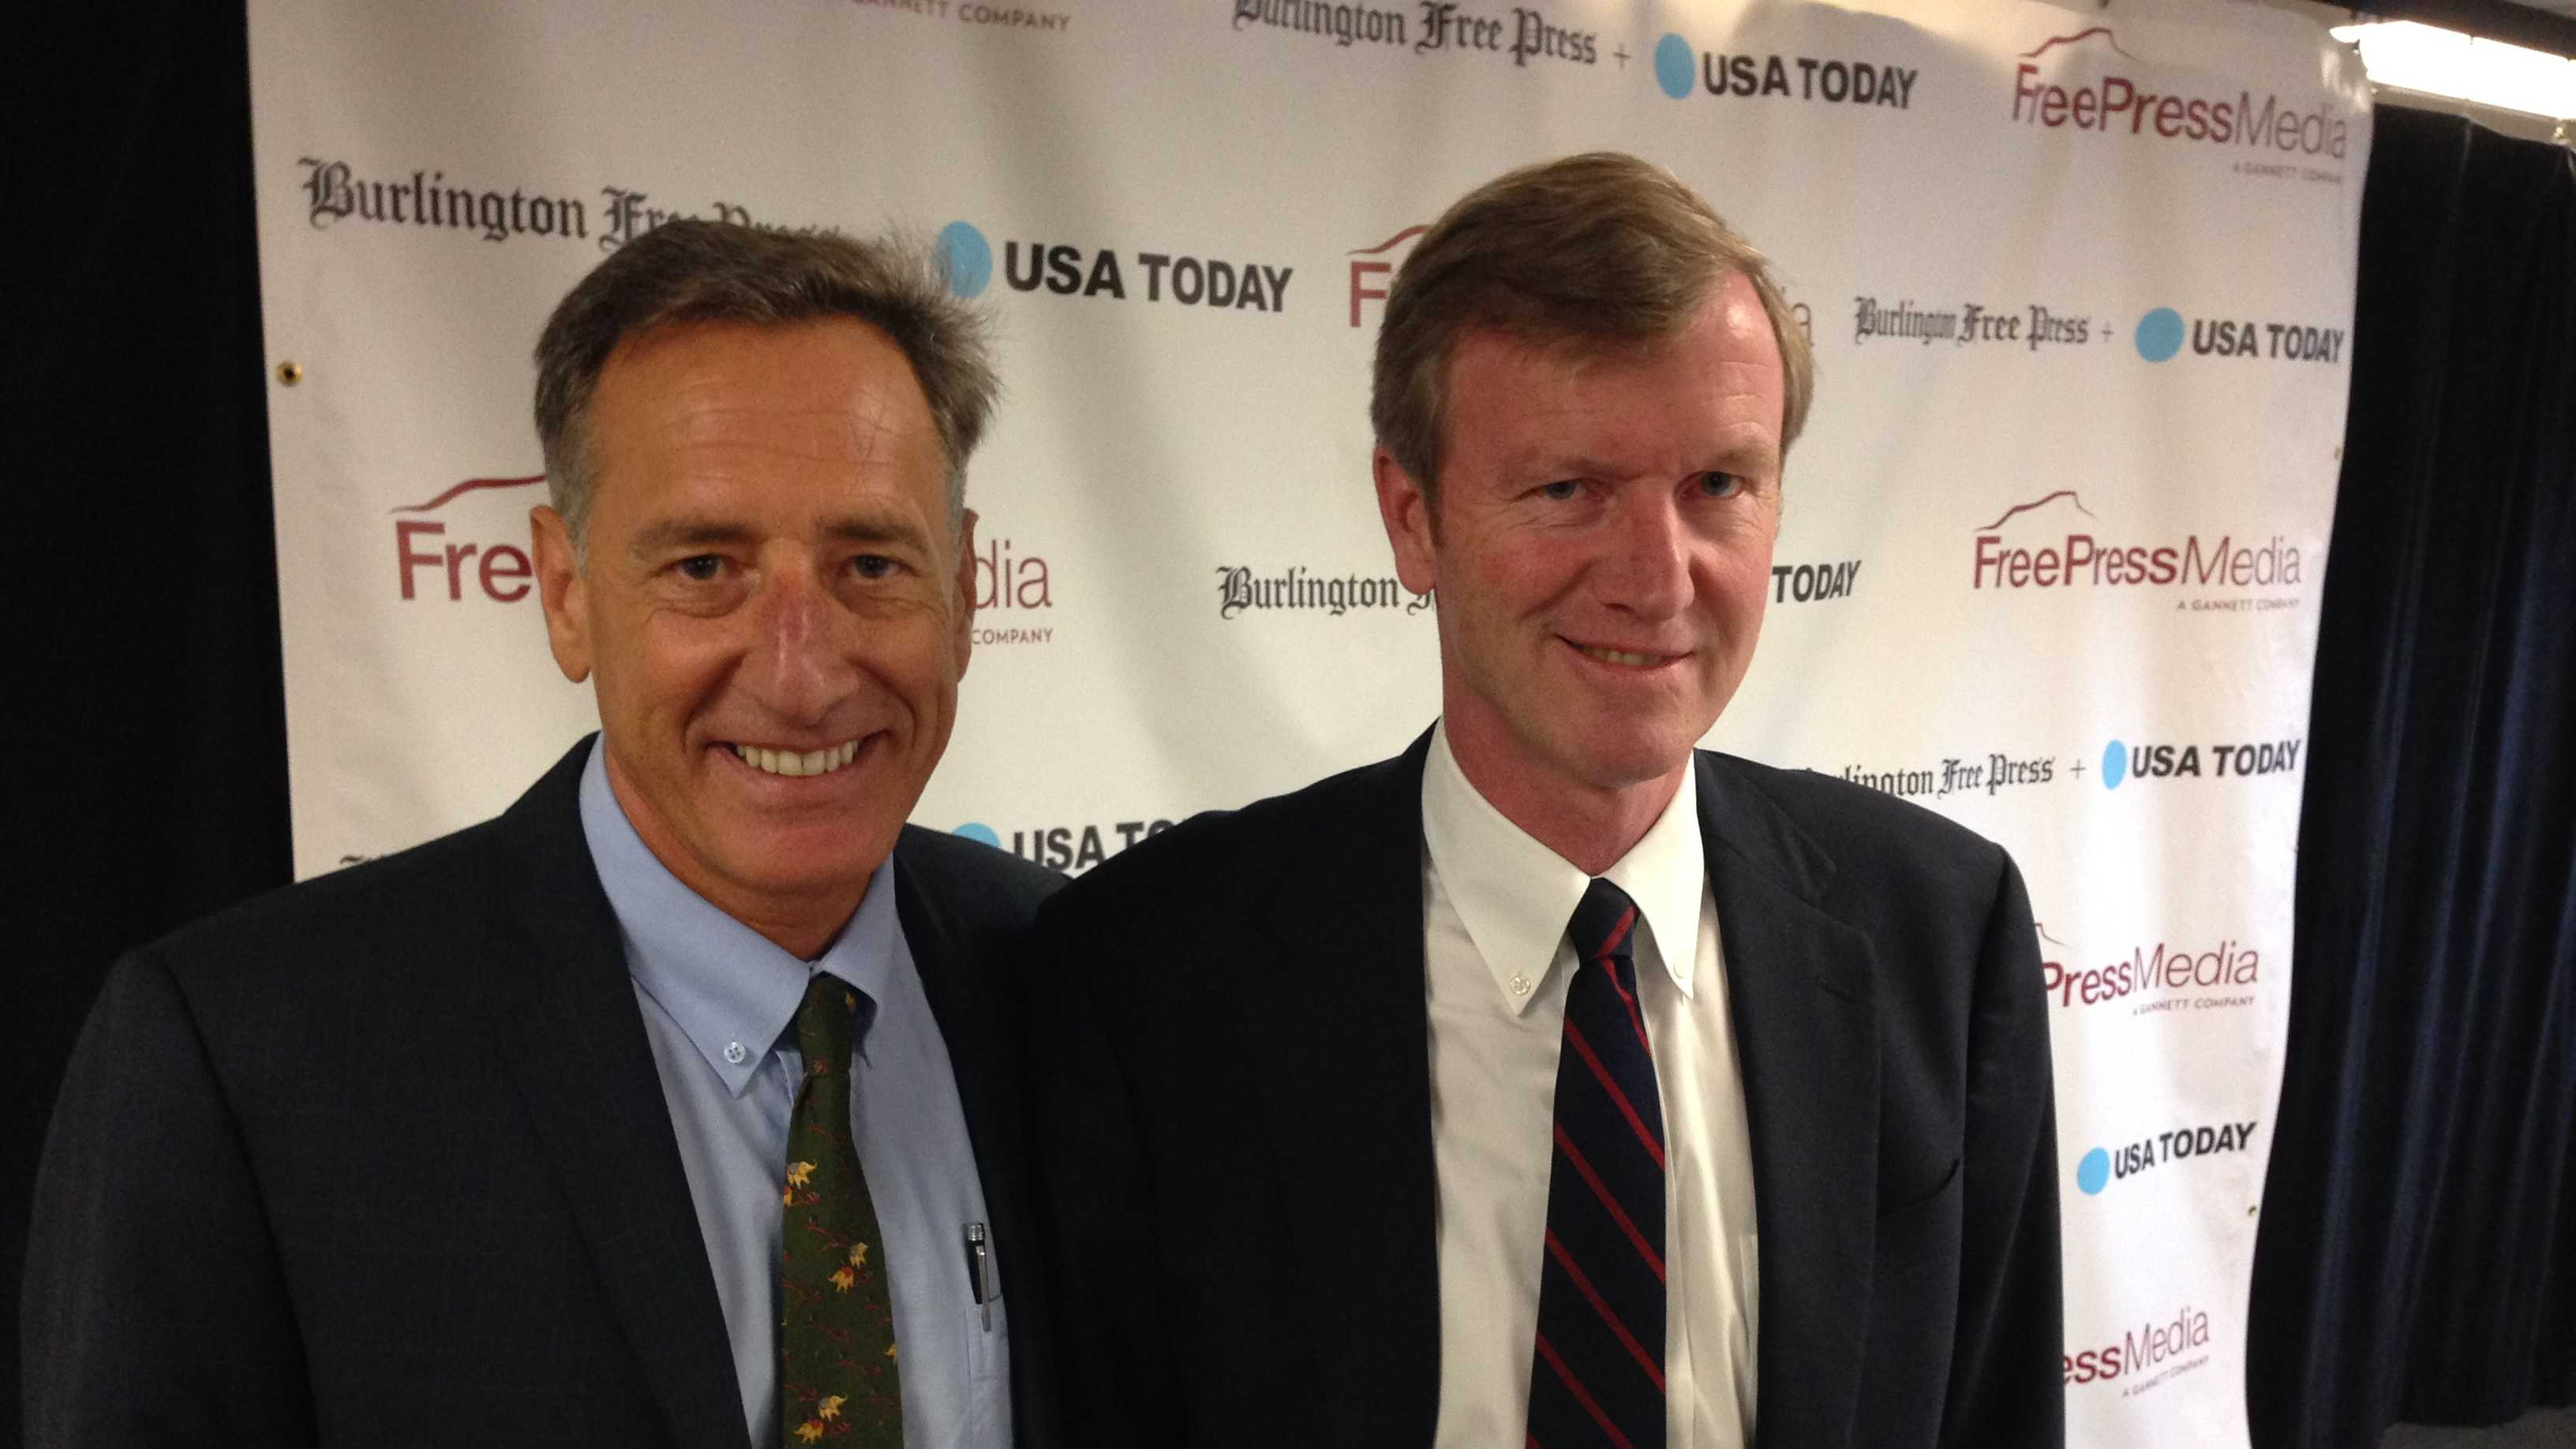 Gov. Peter Shumlin and GOP challenger Scott Milne are all smiles before the start of the Burlington Free Press debate.